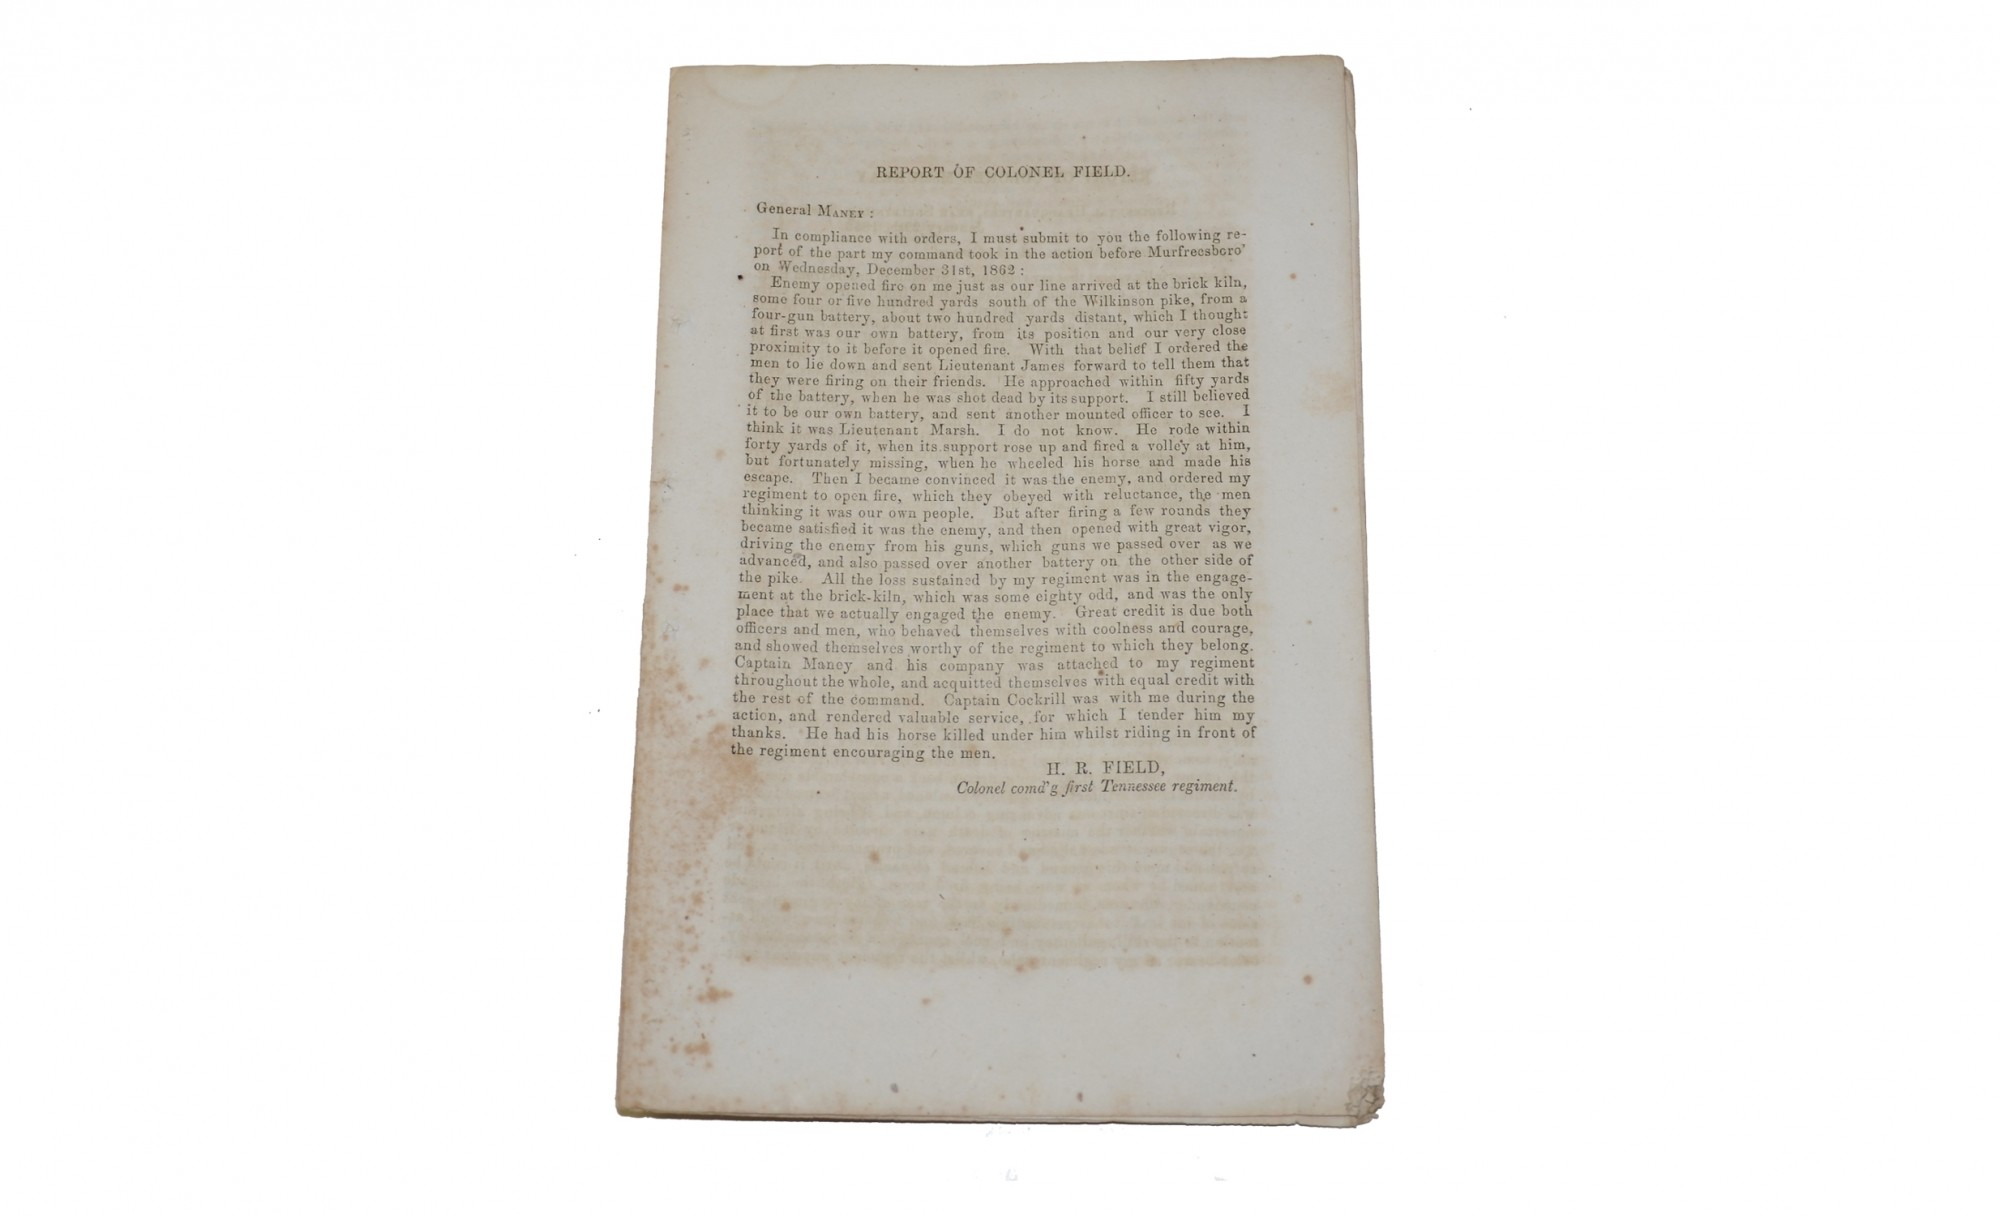 WARTIME PRINTING OF CONFEDERATE REPORTS OF MURFREESBORO